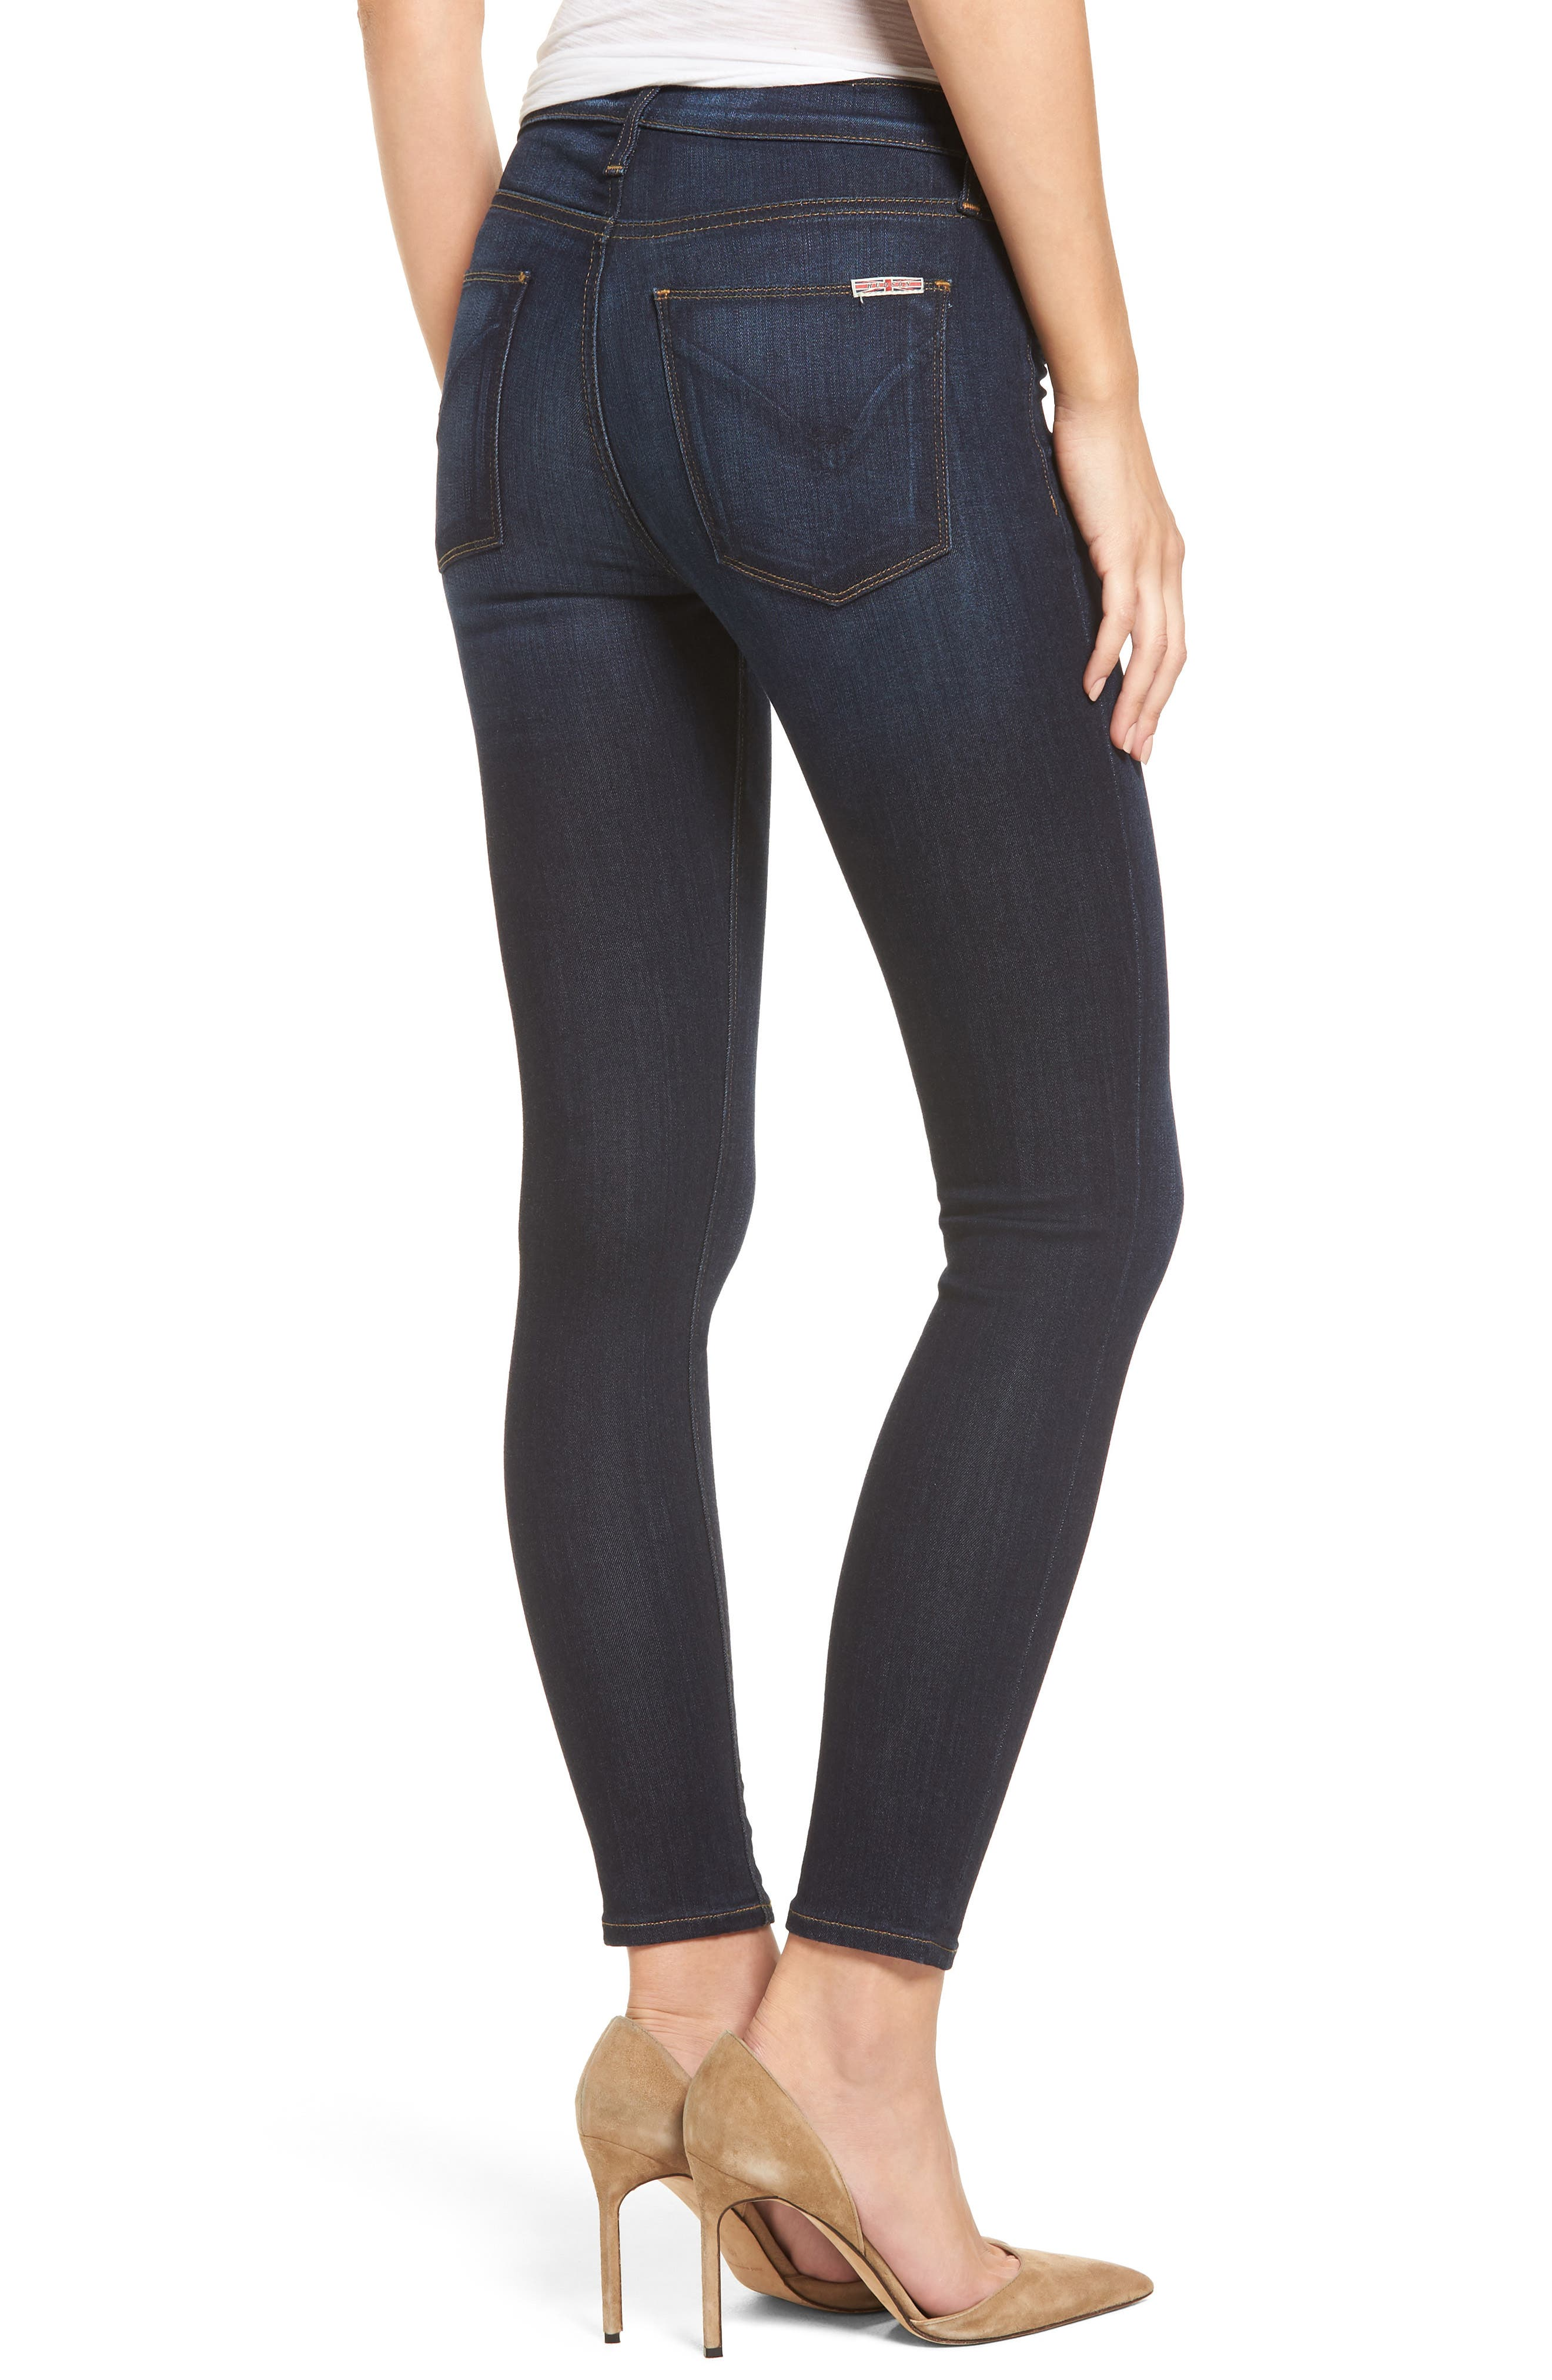 'Nico' Ankle Super Skinny Jeans,                             Alternate thumbnail 2, color,                             402